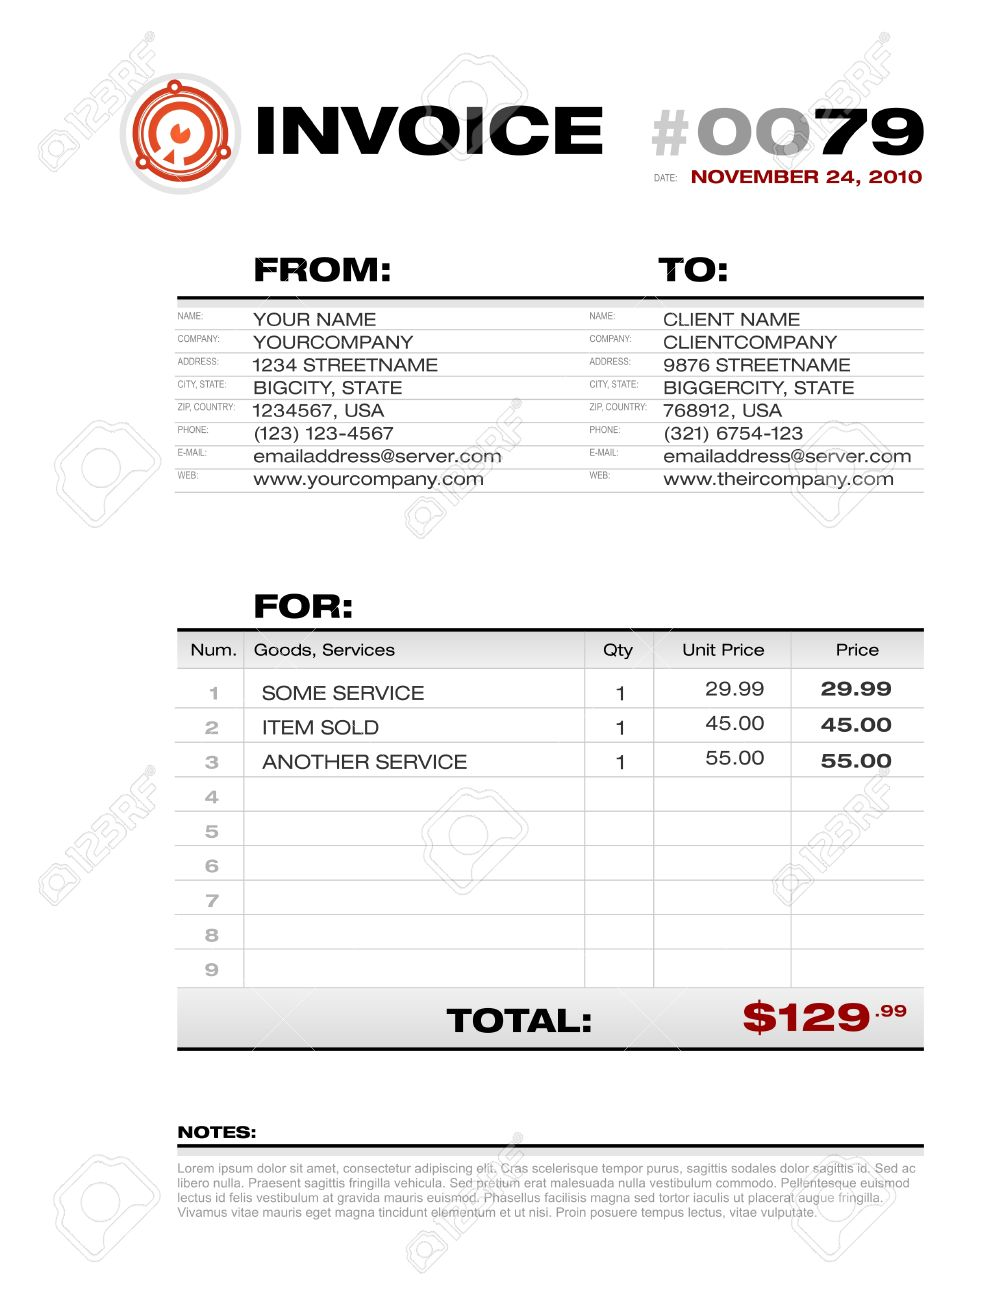 Invoice Template Royalty Free Cliparts Vectors And Stock - Invoice template usa